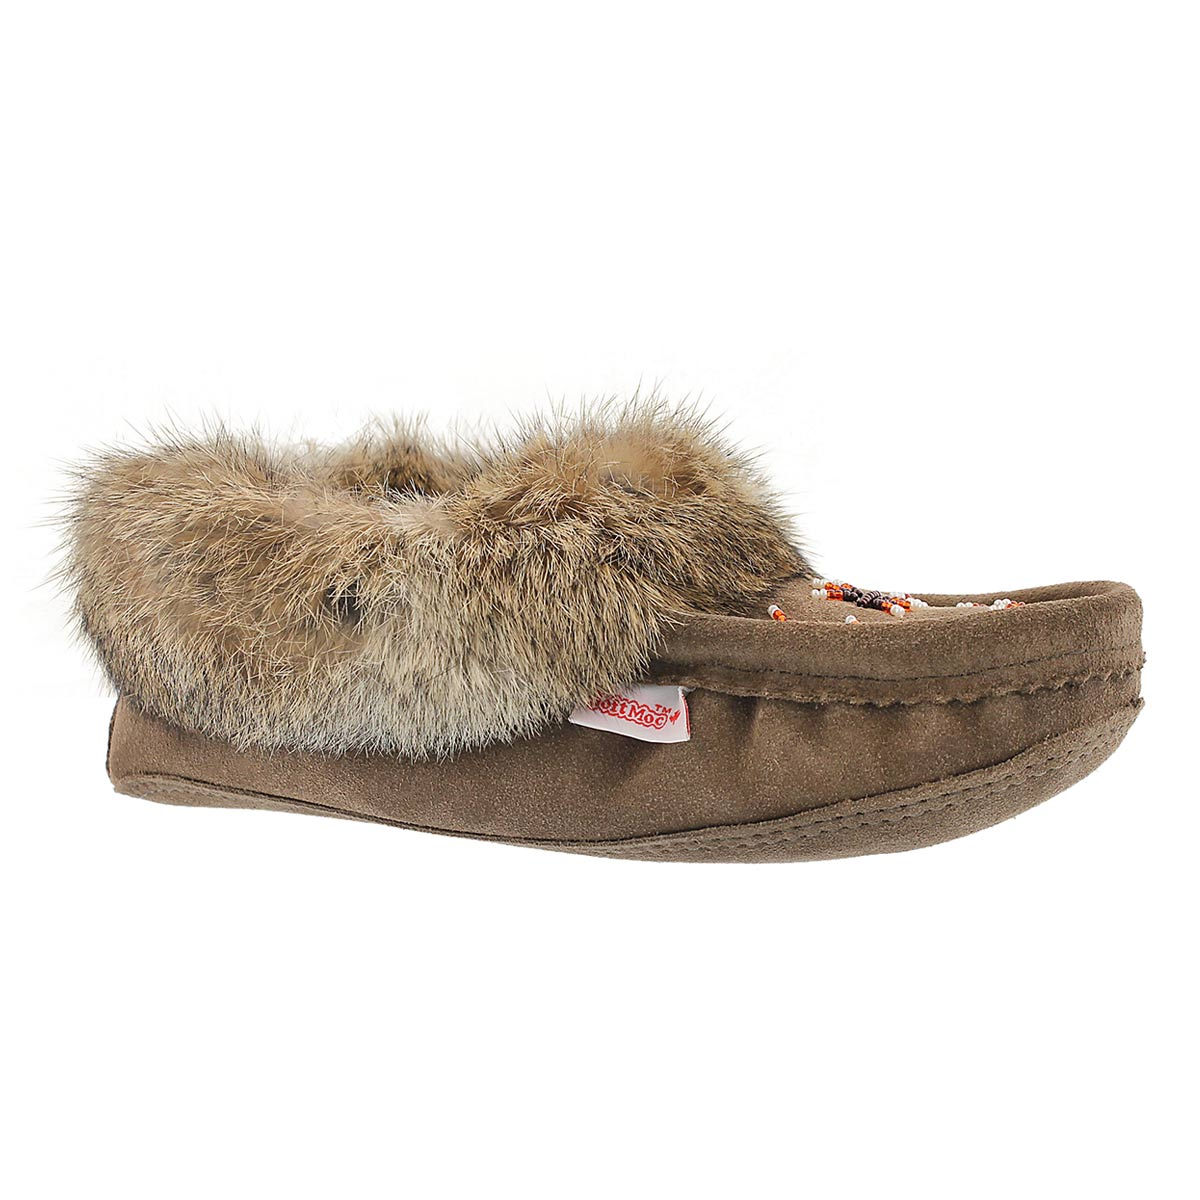 11% OFF Lds brown rabbit fur moccasin